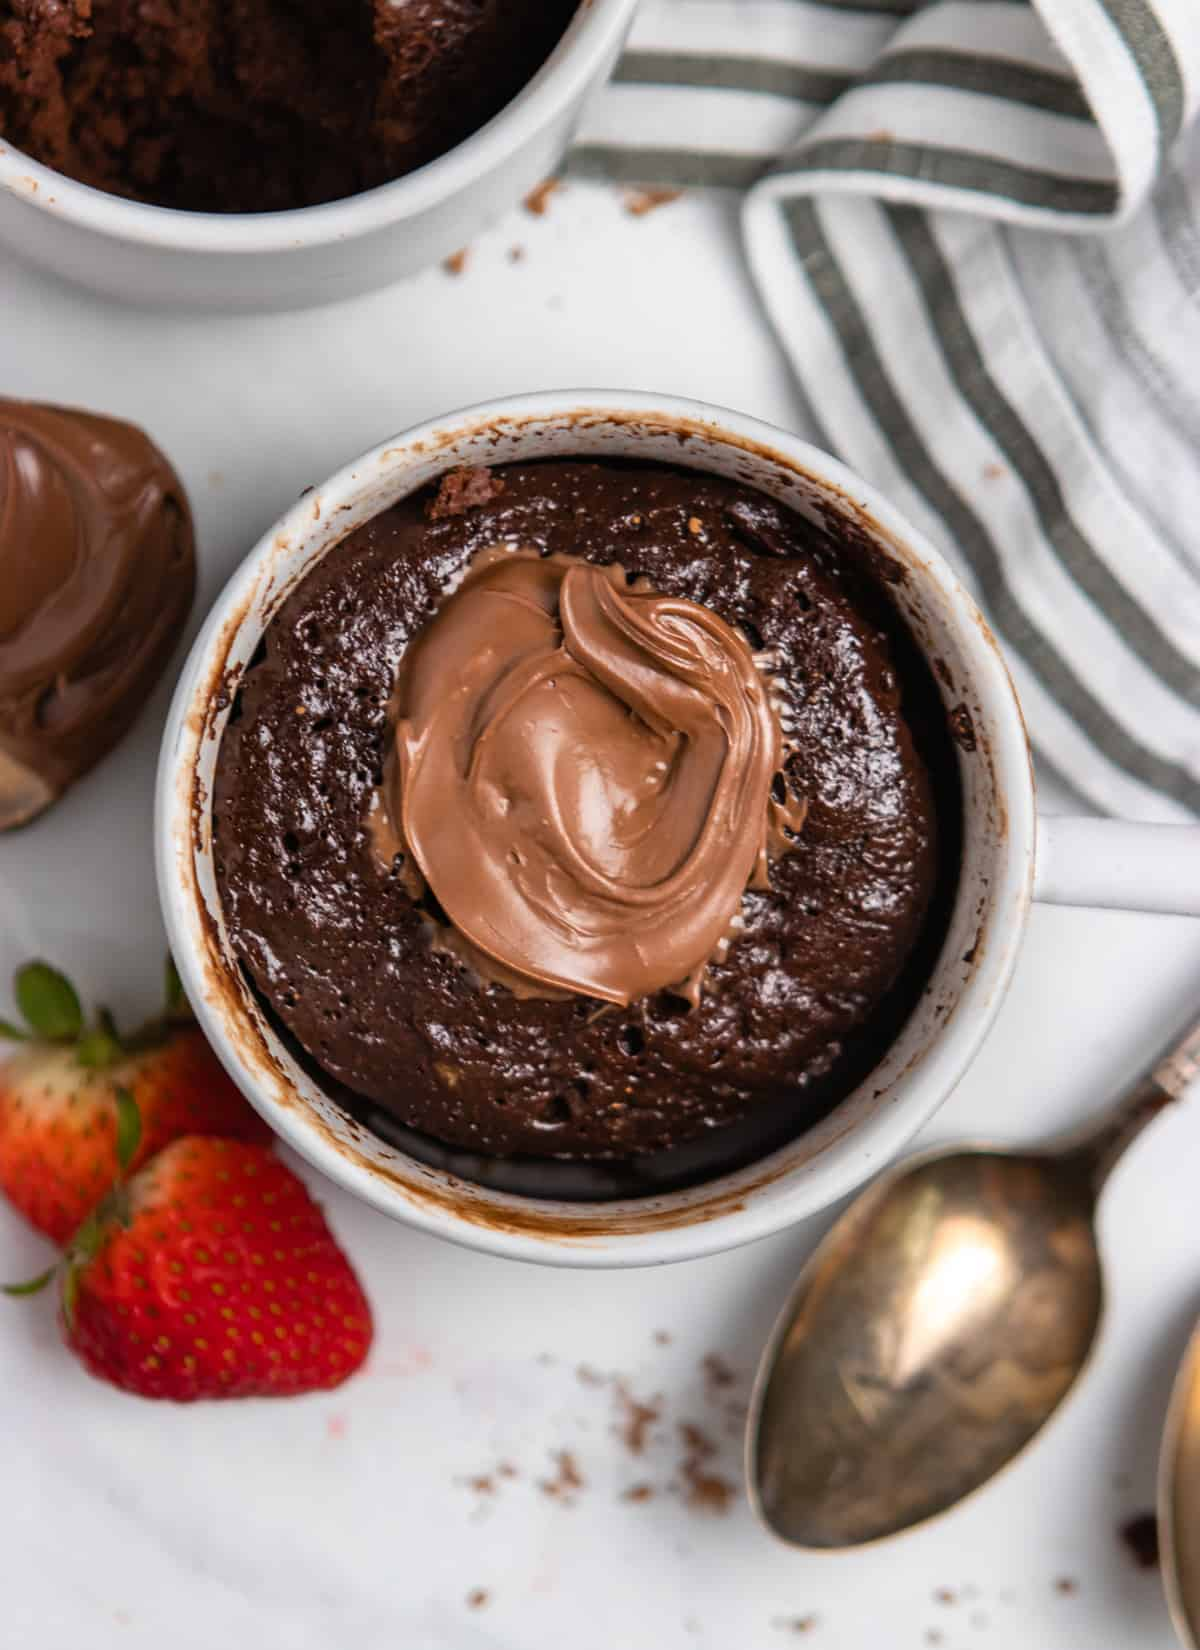 Overhead view of nutella chocolate cake in mug with strawberries and spoon.